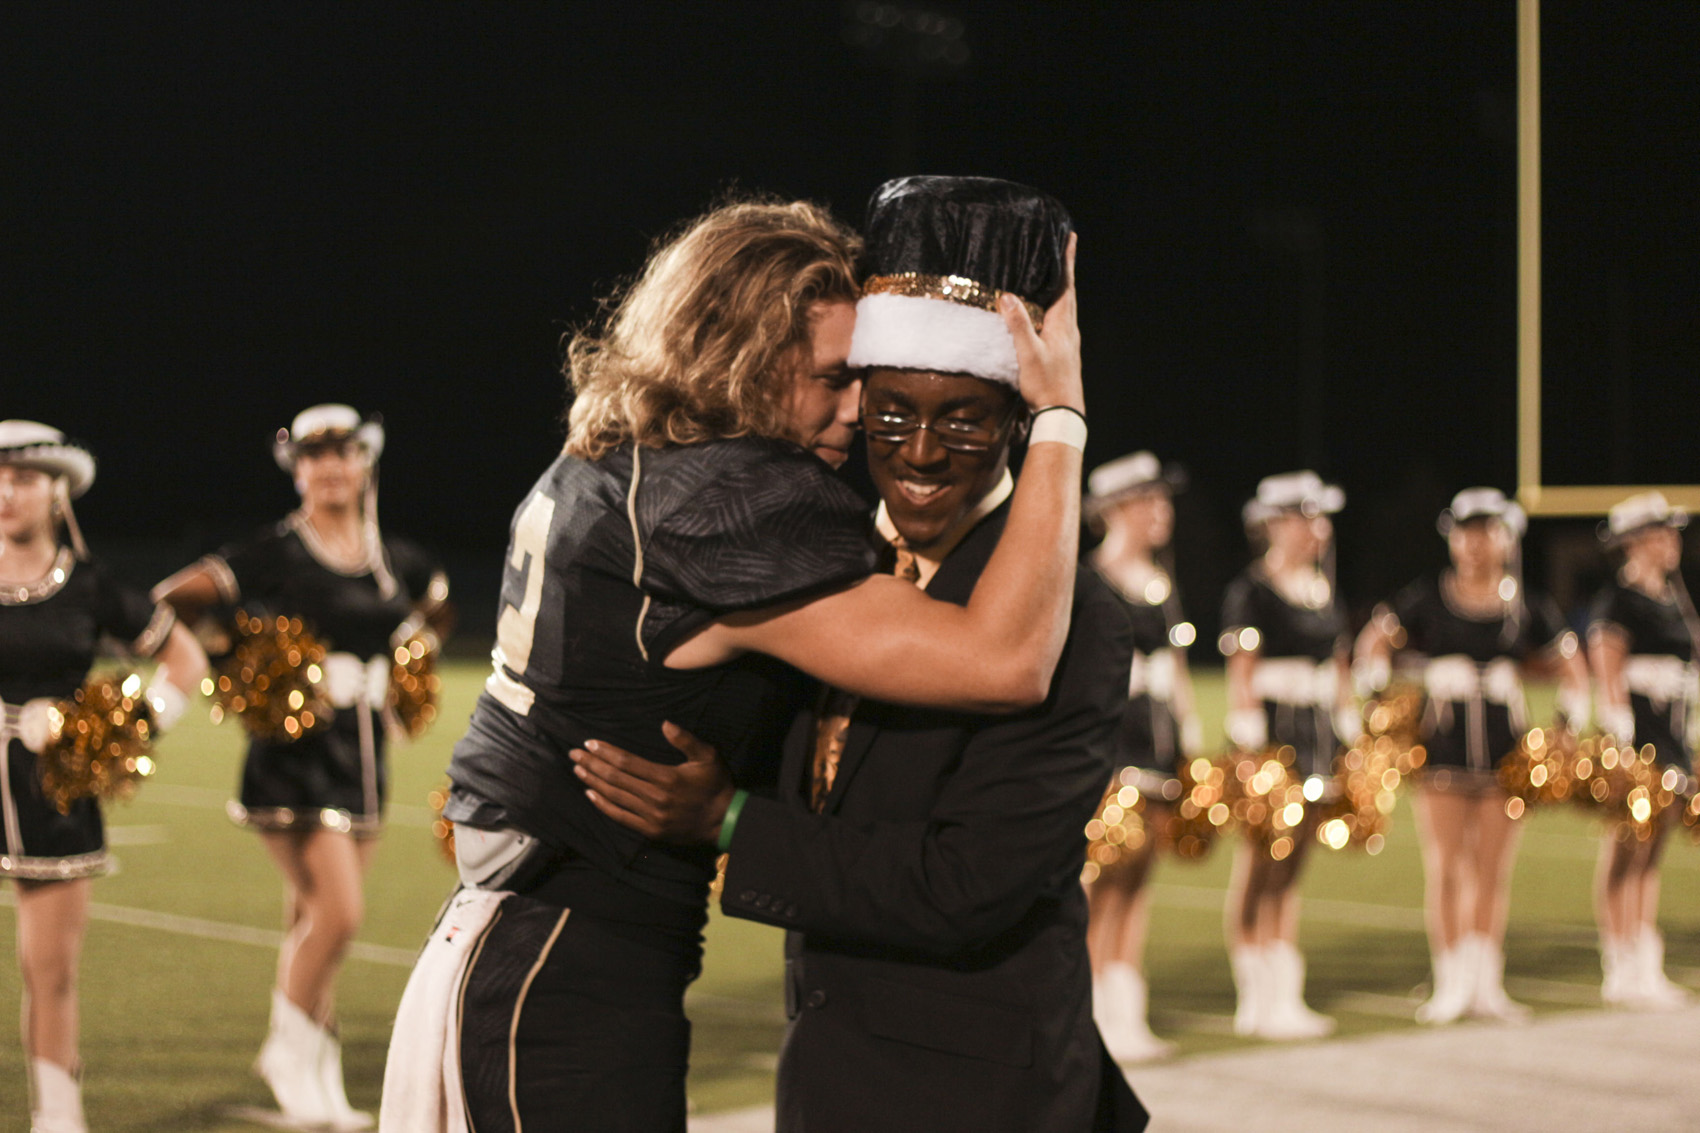 Fossil Ridge Staff Captures Special Homecoming Moment